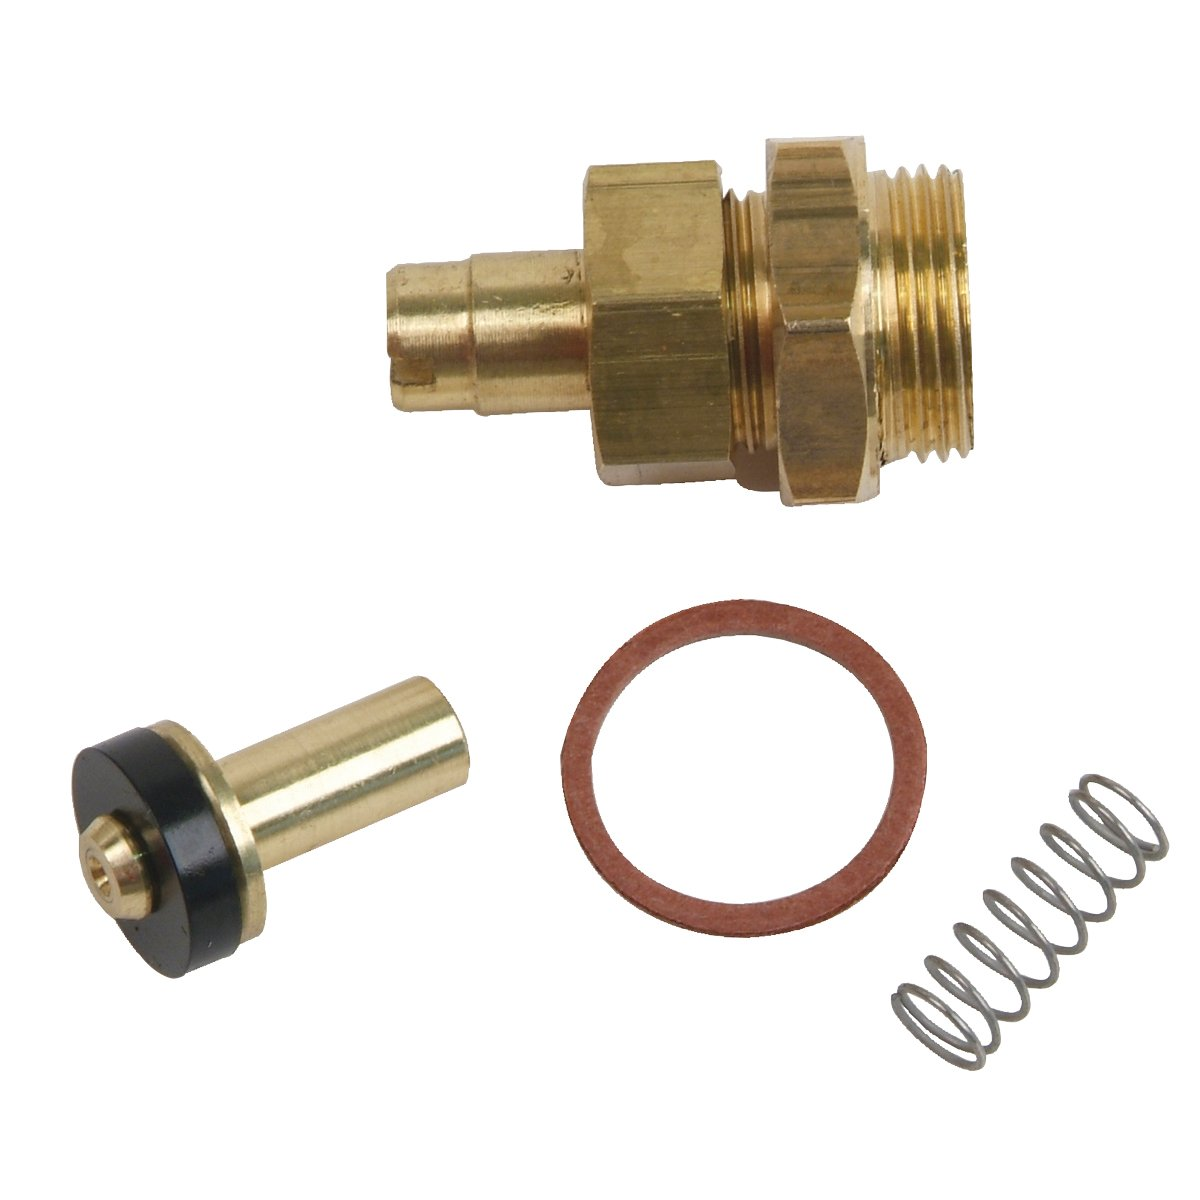 BrassCraft SWD0229 Delta Faucet Check Valve Kit for 600-1600 Pressure Balance Faucet Series